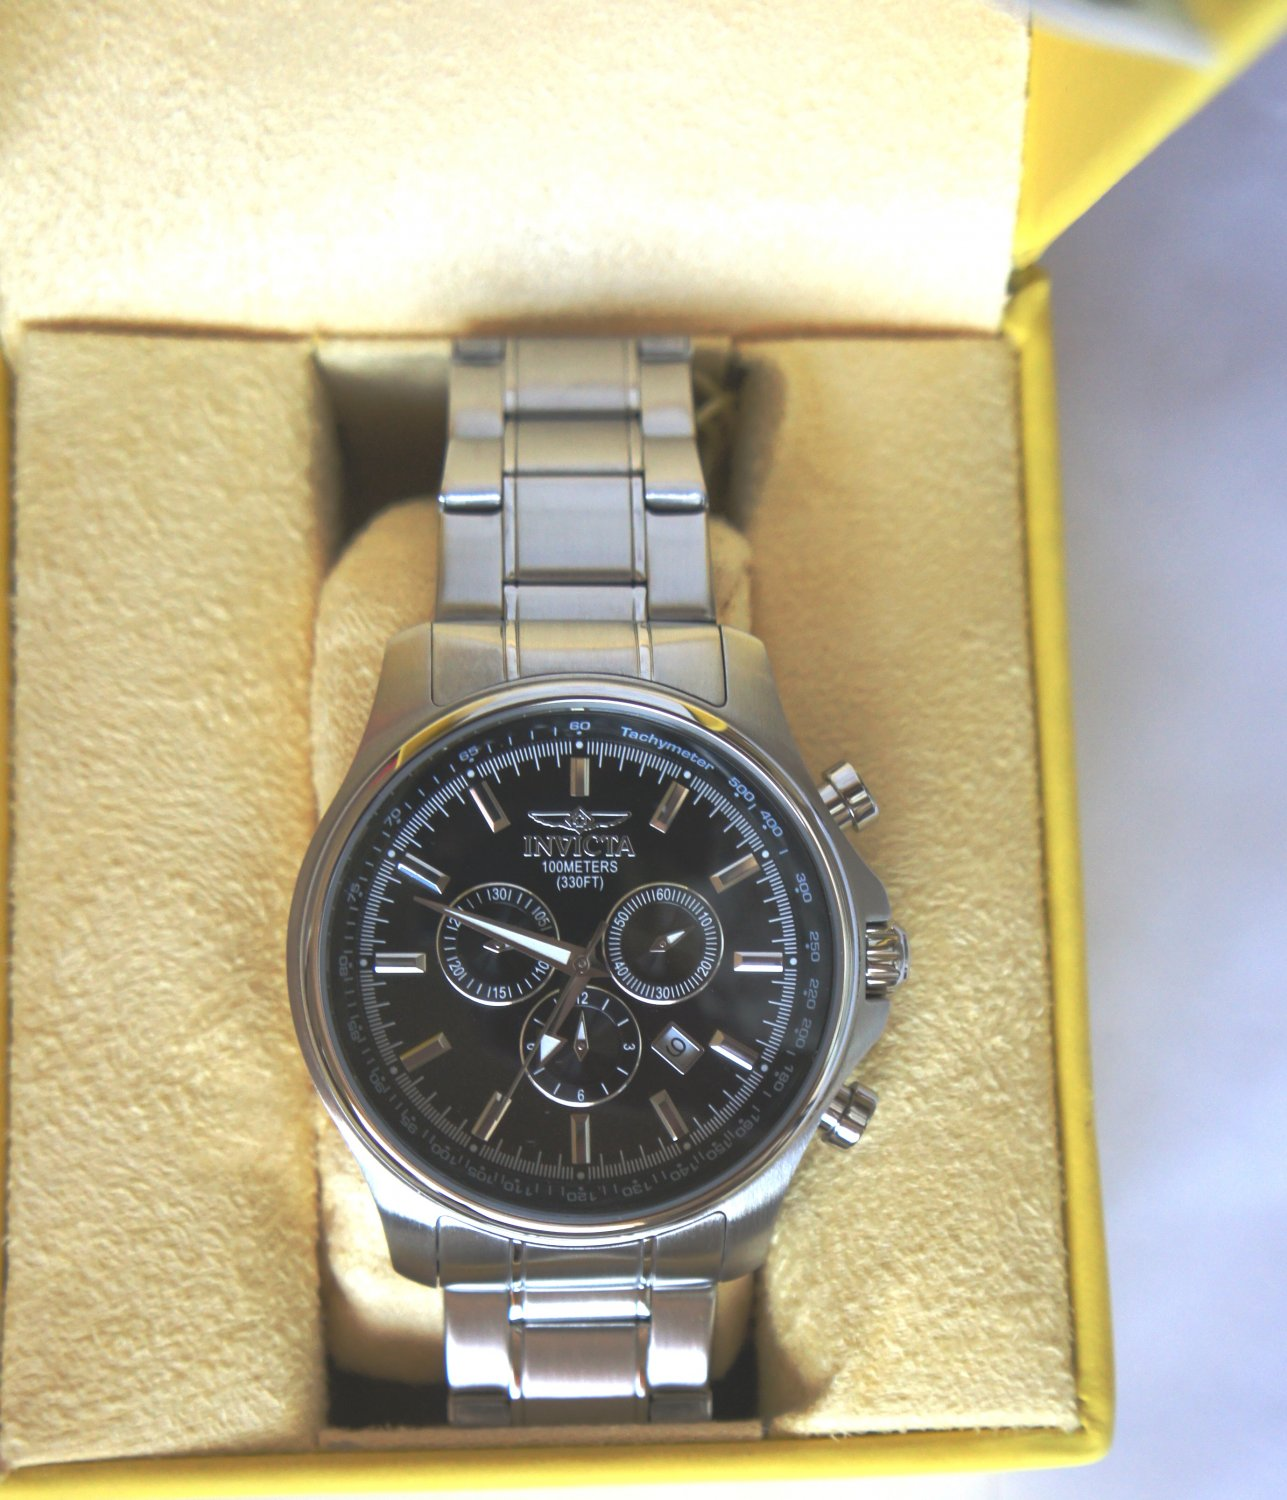 Invicta Stainlees Steel Black Dial SWISS Watch For Men - Model 1835